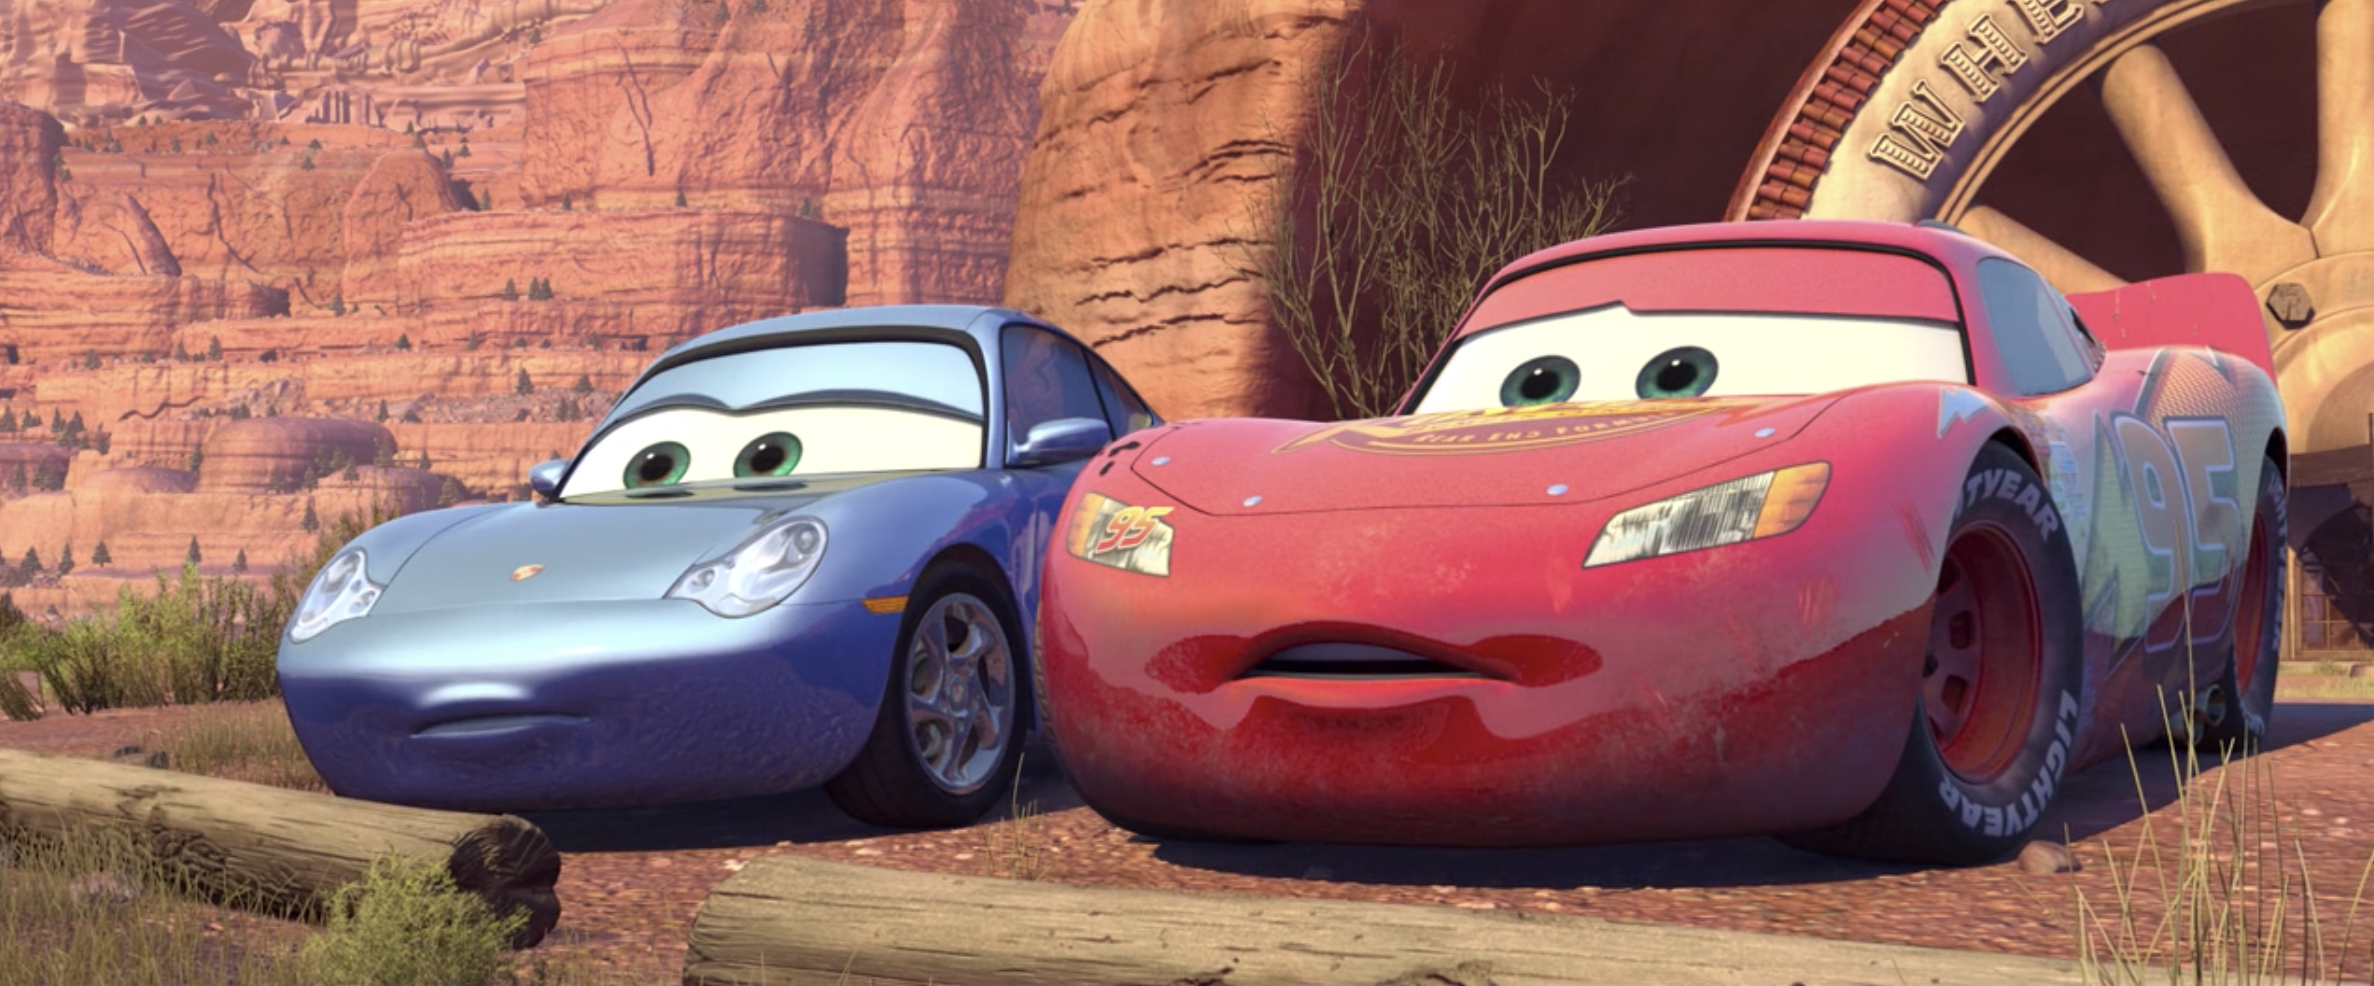 Sally and Lightning McQueen look down on Radiator Springs